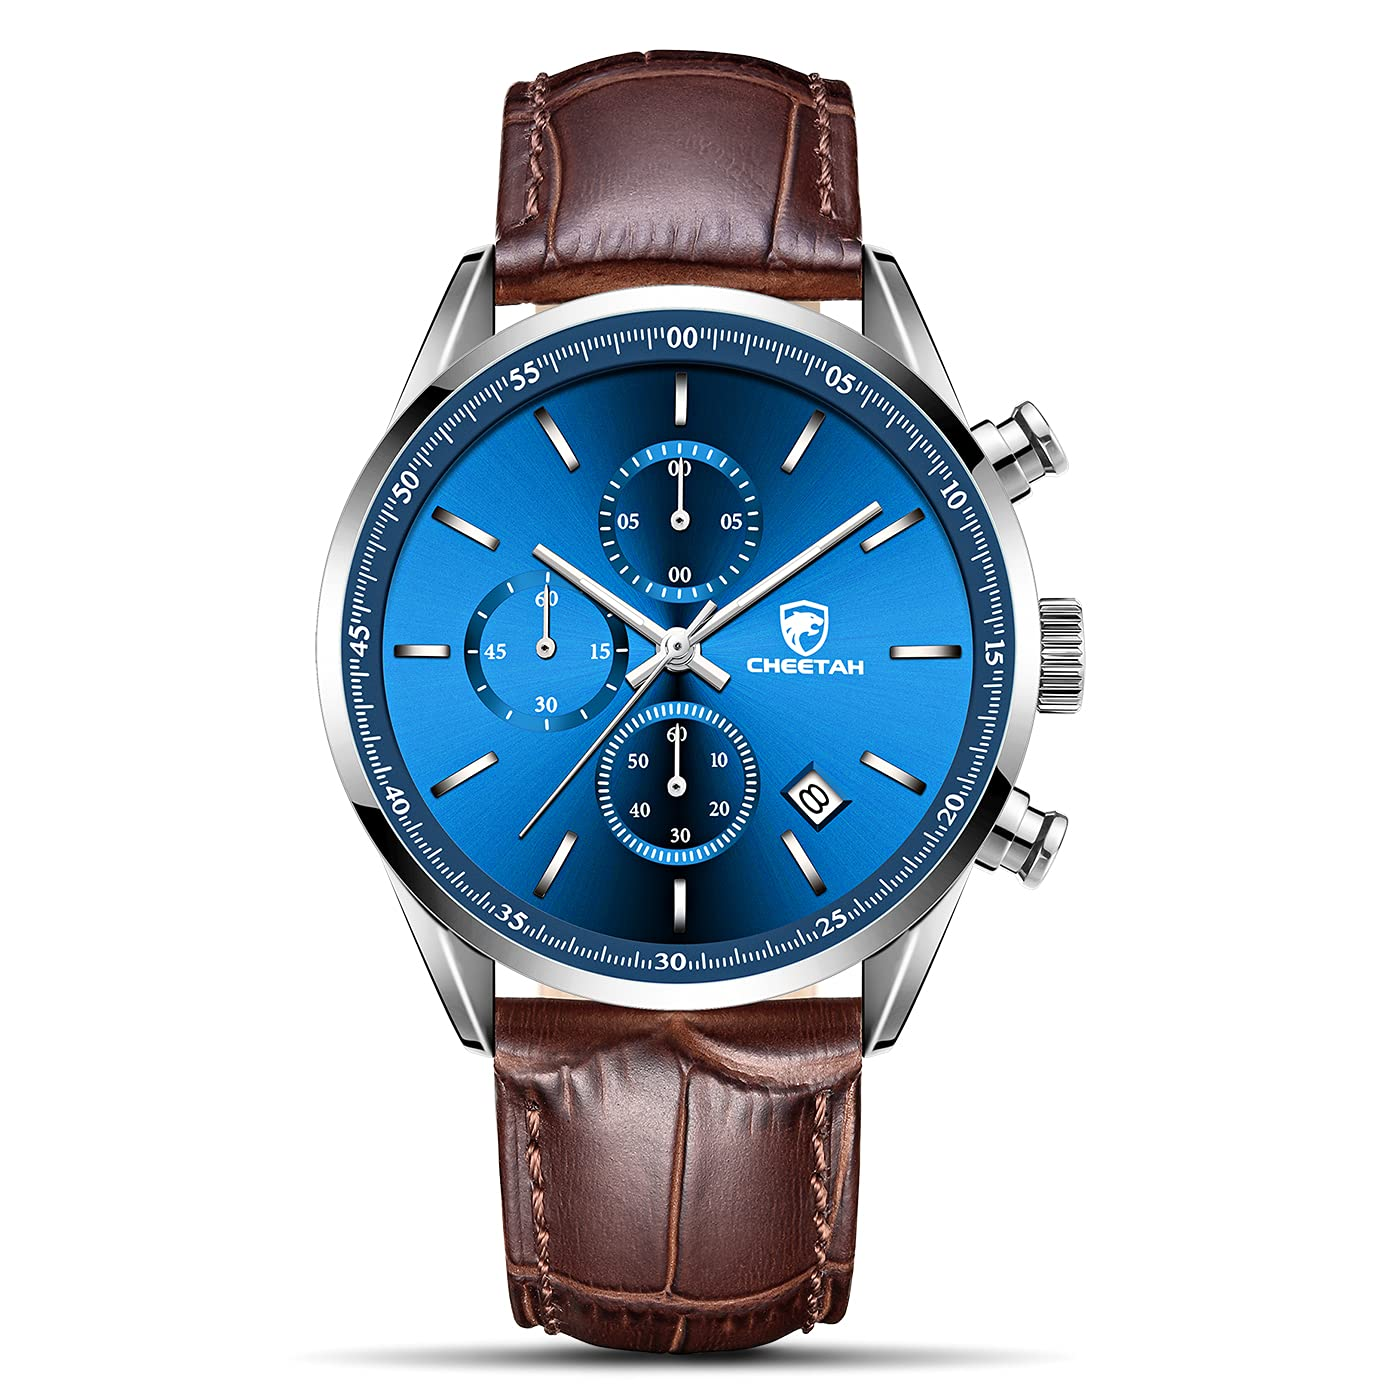 CHEETAH Fashion Business Mens Watches with Stainless Steel or Leather Strap Waterproof